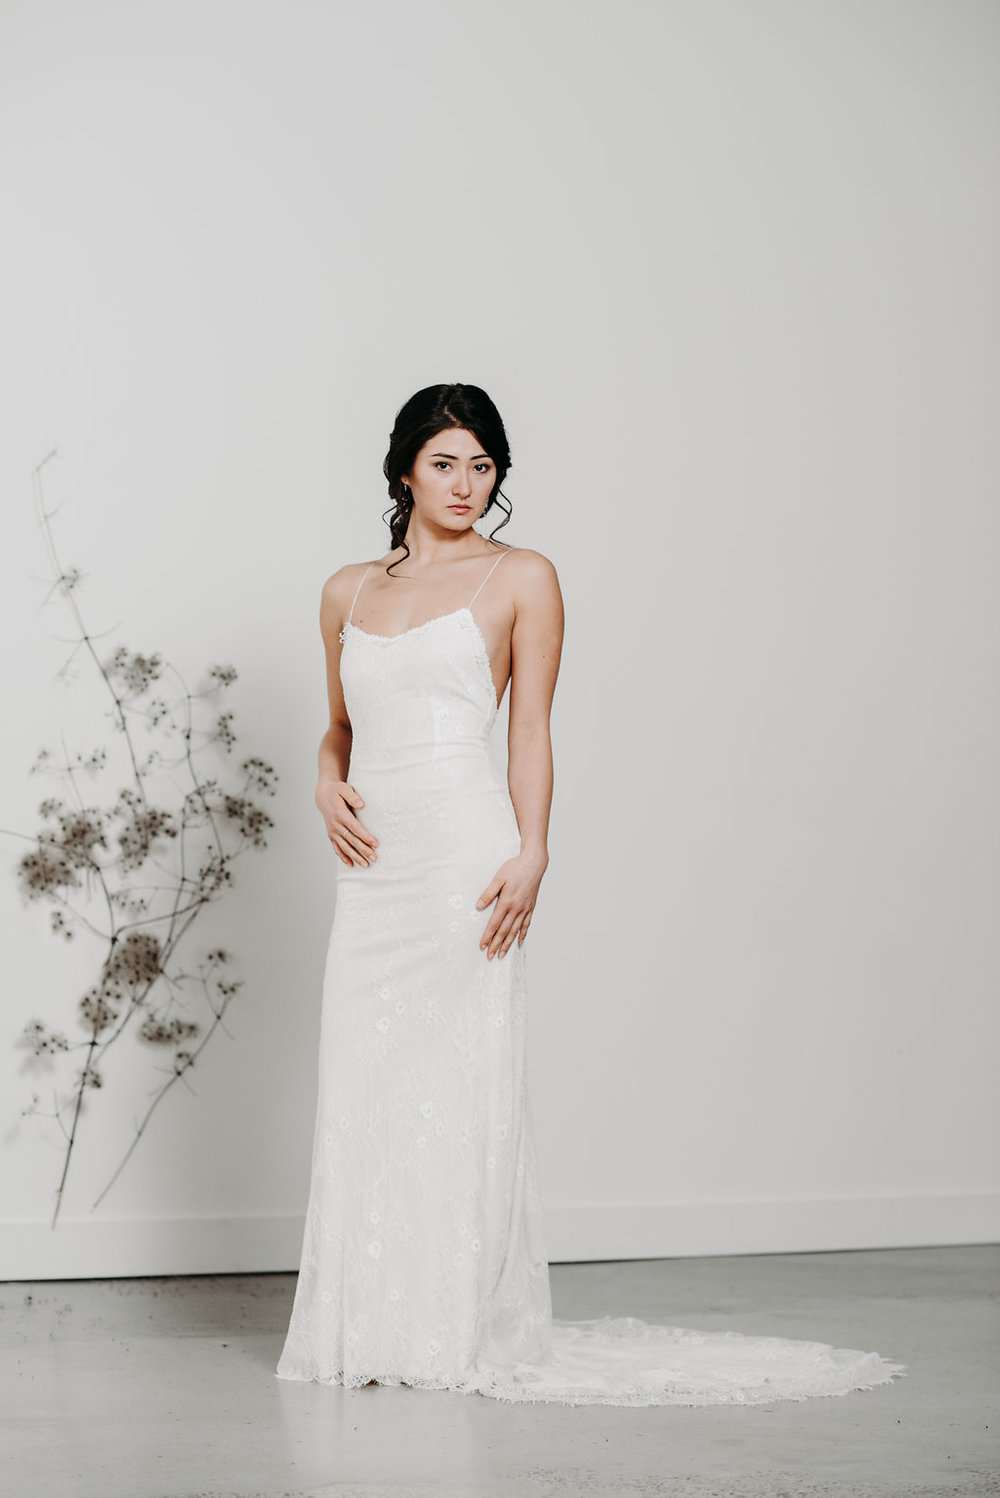 bridal-gowns-ottawa-boutique-wedding-dress-pure-magnolia-revelle-westboro-PM_Penny_2.jpg